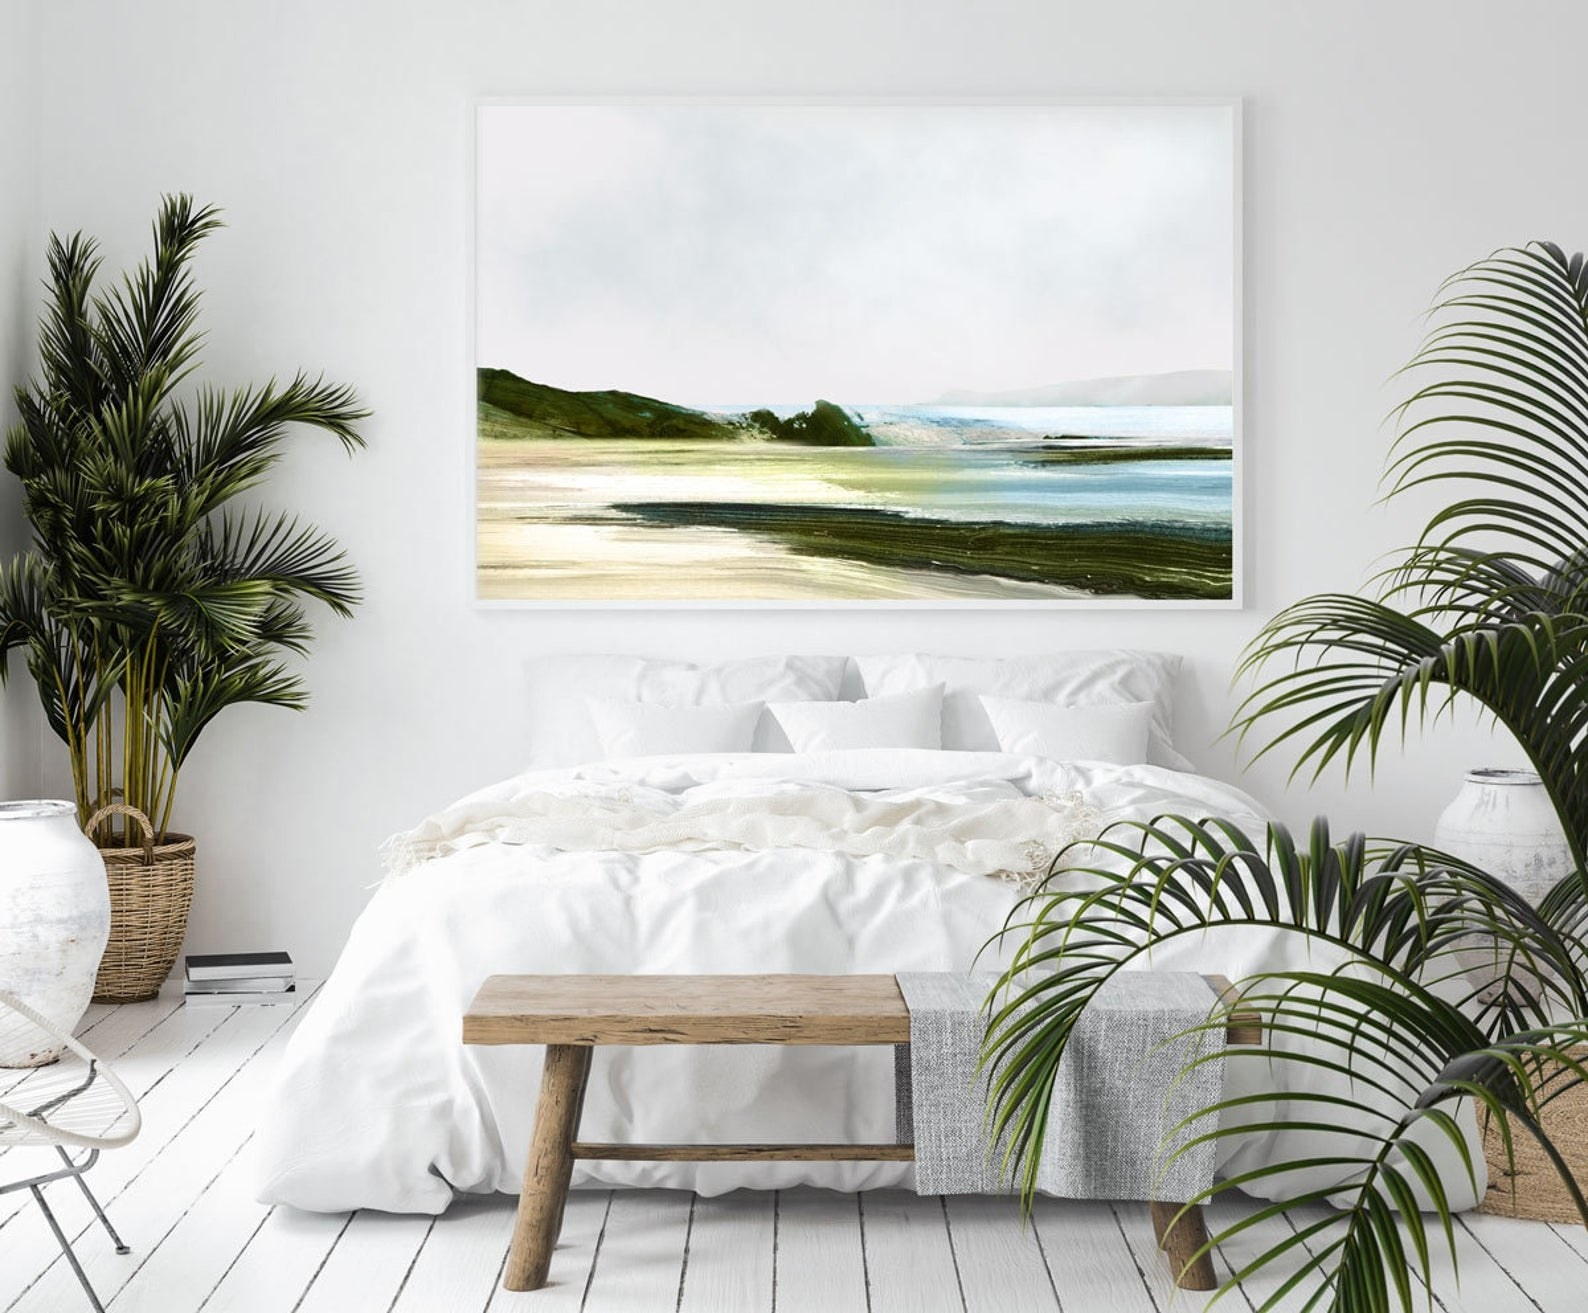 large rectangle art print on the wall that looks like a screne beach scene